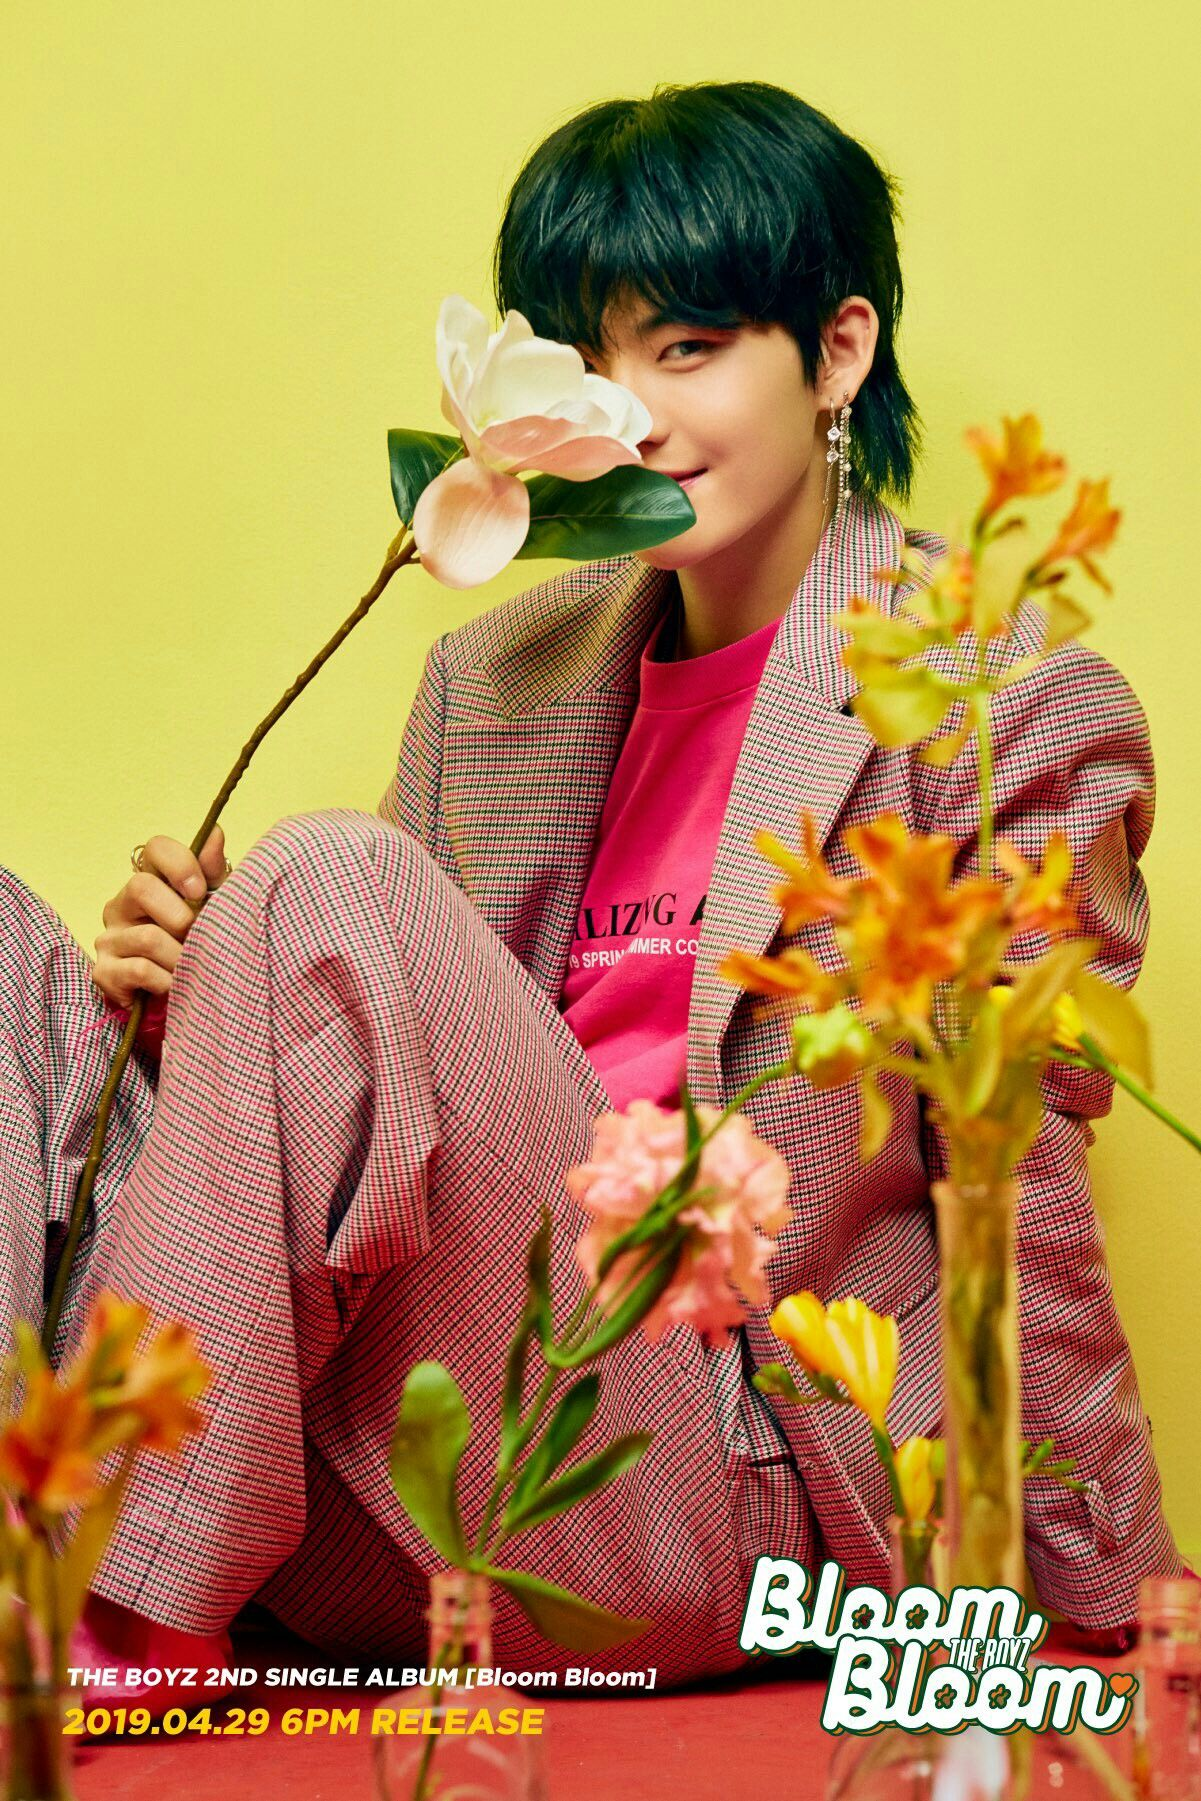 The Boyz 2nd Single Album Bloom Bloom Concept Photo Hwall